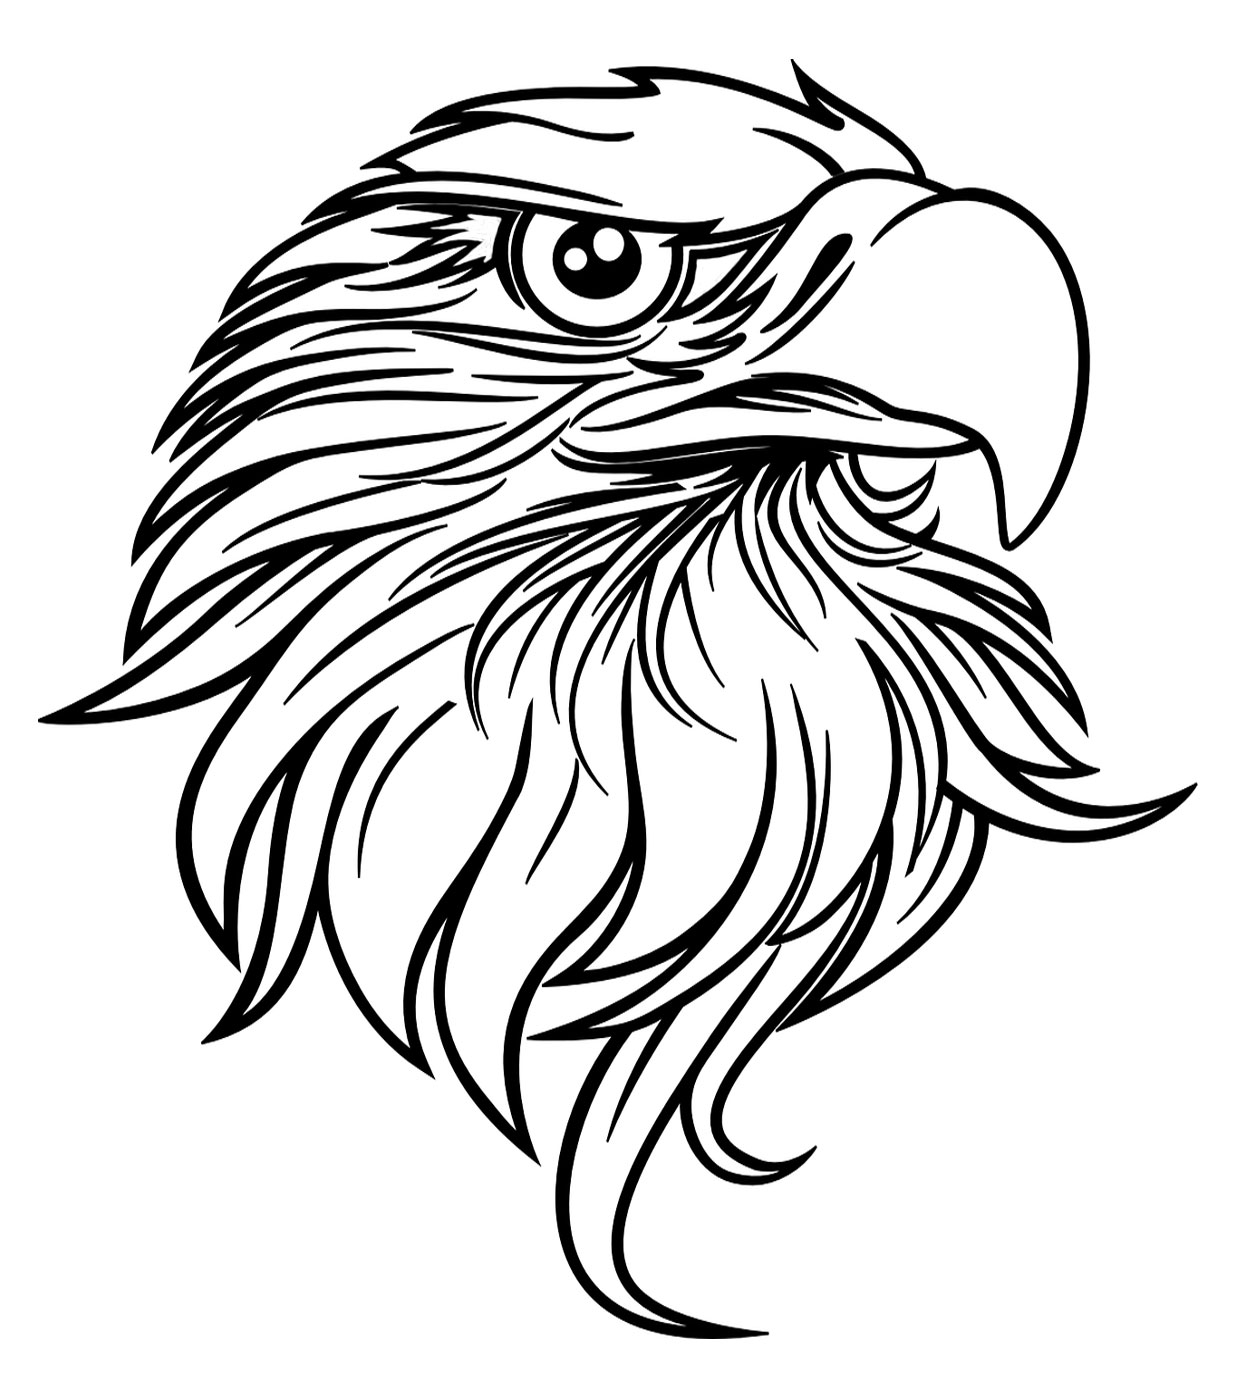 coloring pages eagle free eagle coloring pages pages coloring eagle